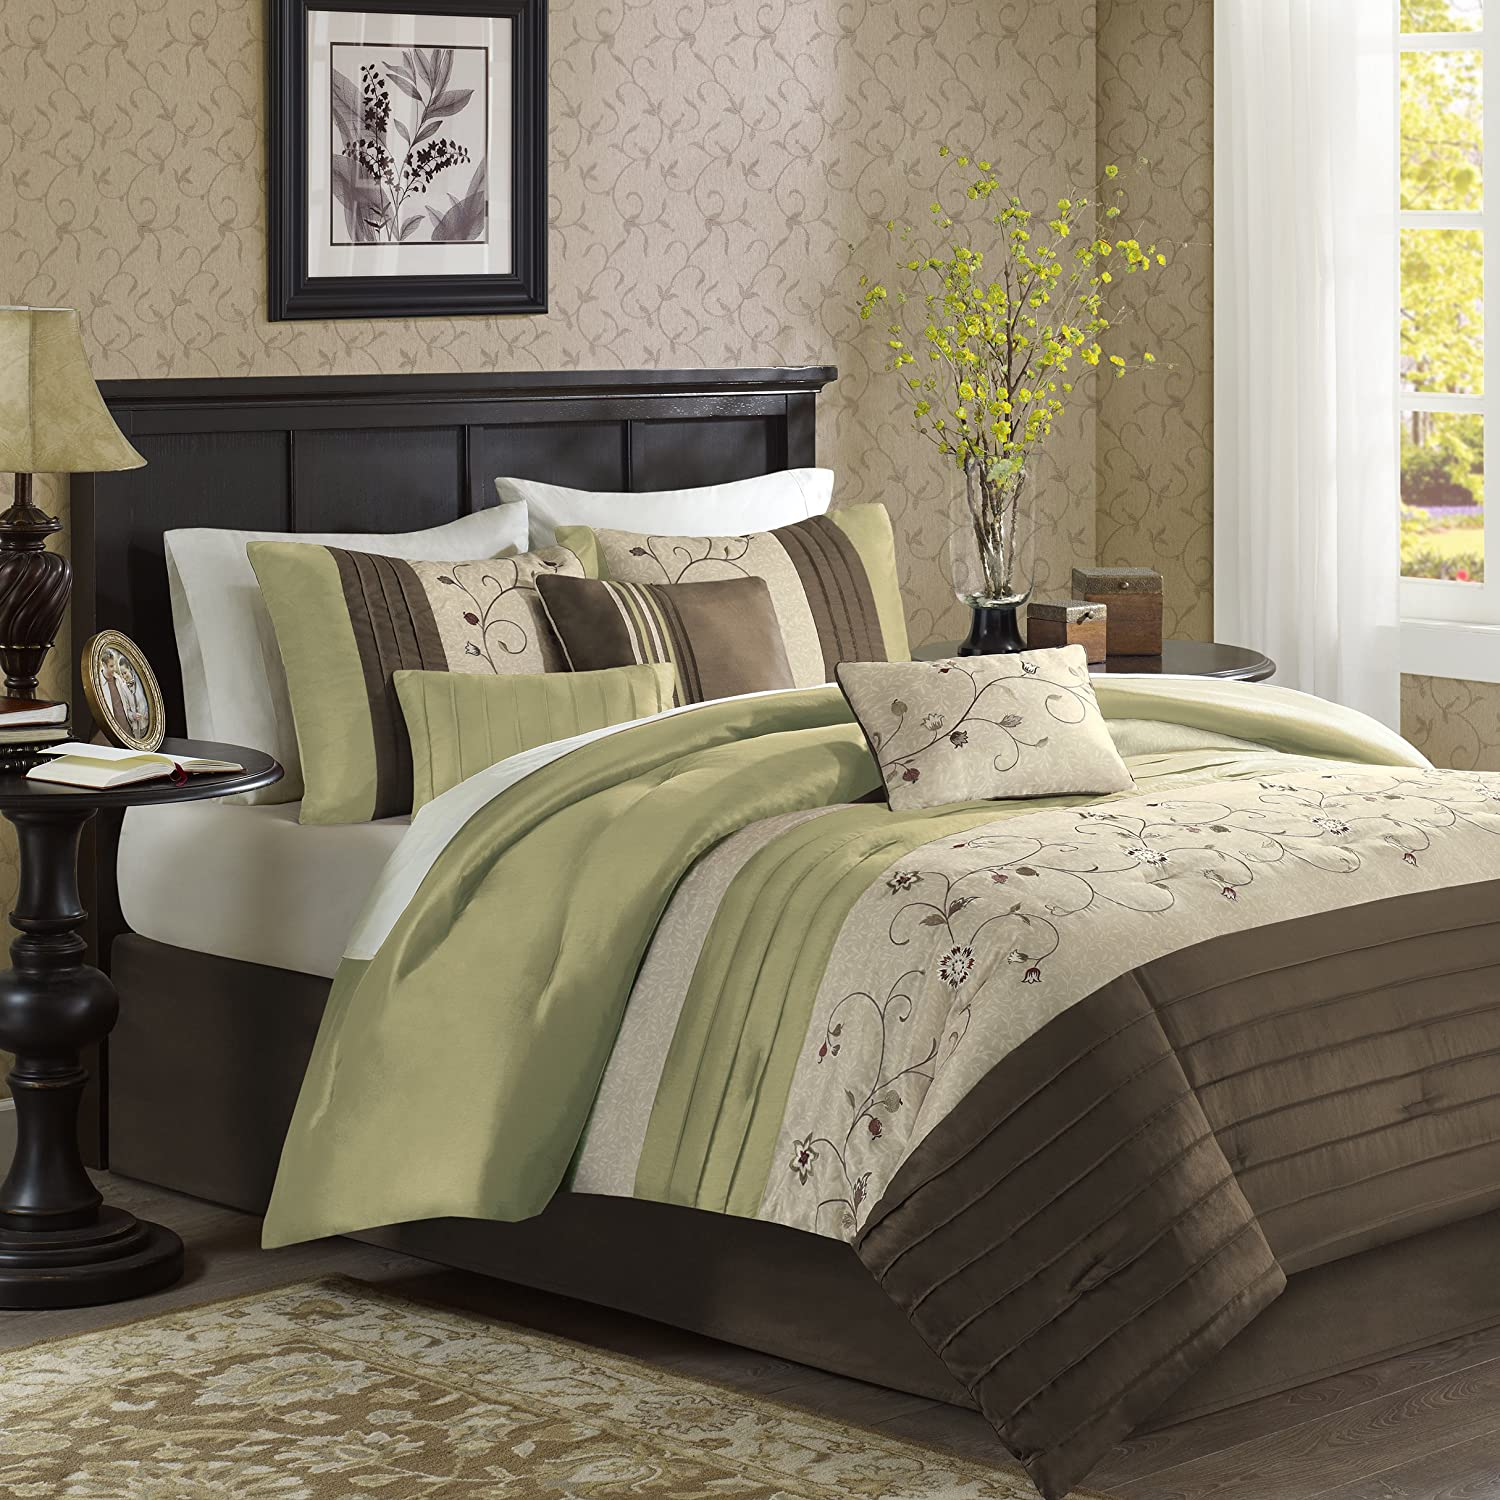 Madison Park Serene 7 Piece Comforter Set, Queen, Green